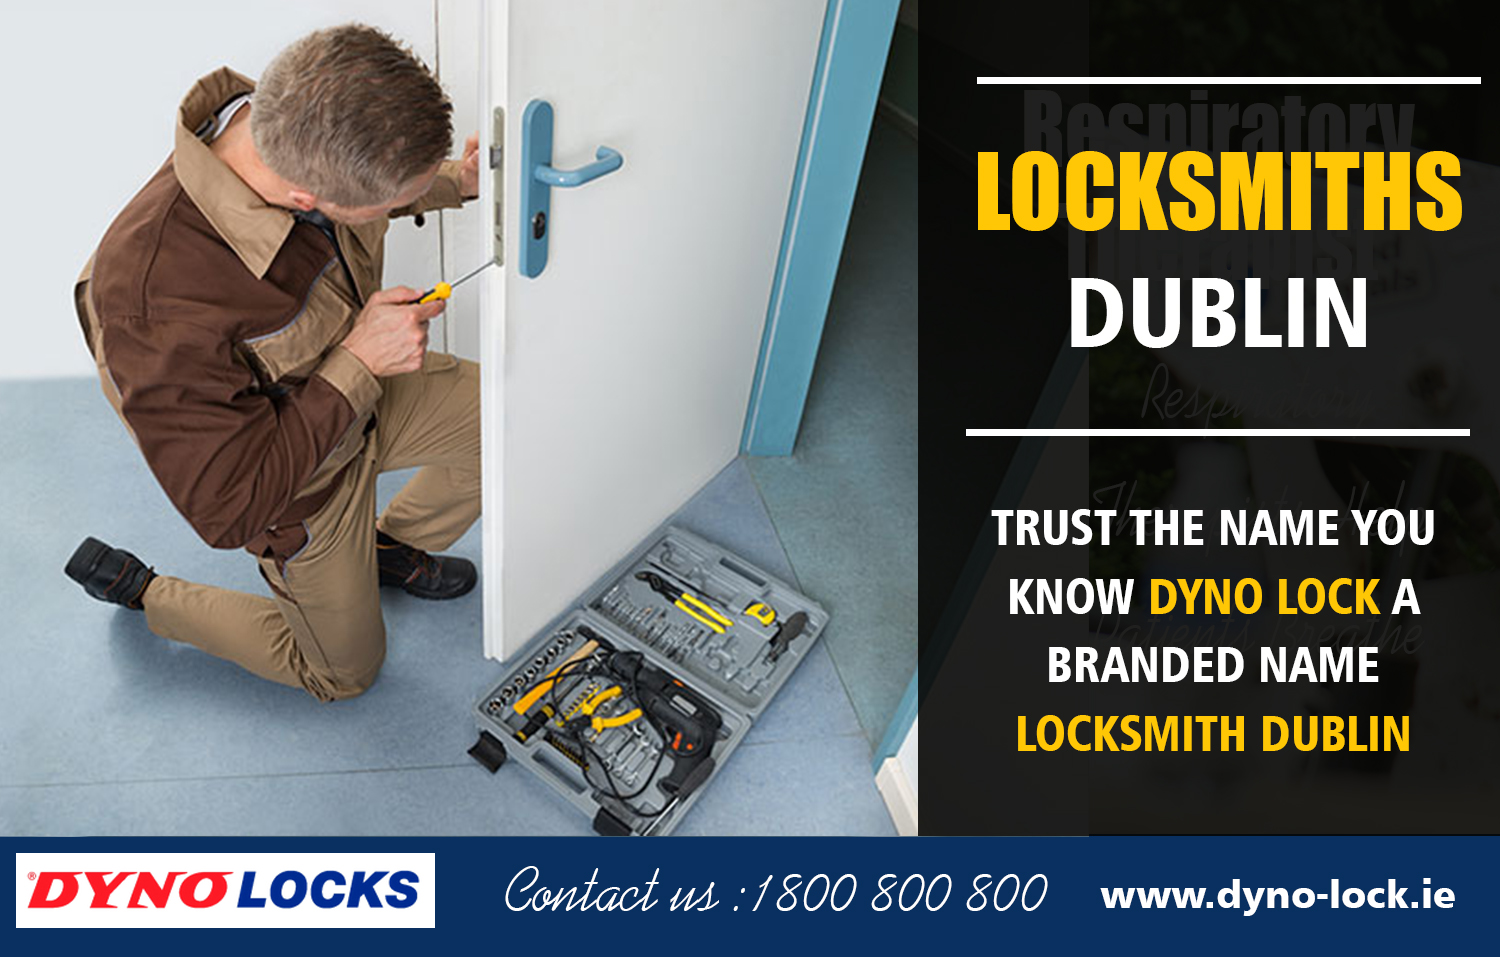 Dublin Locksmith Services